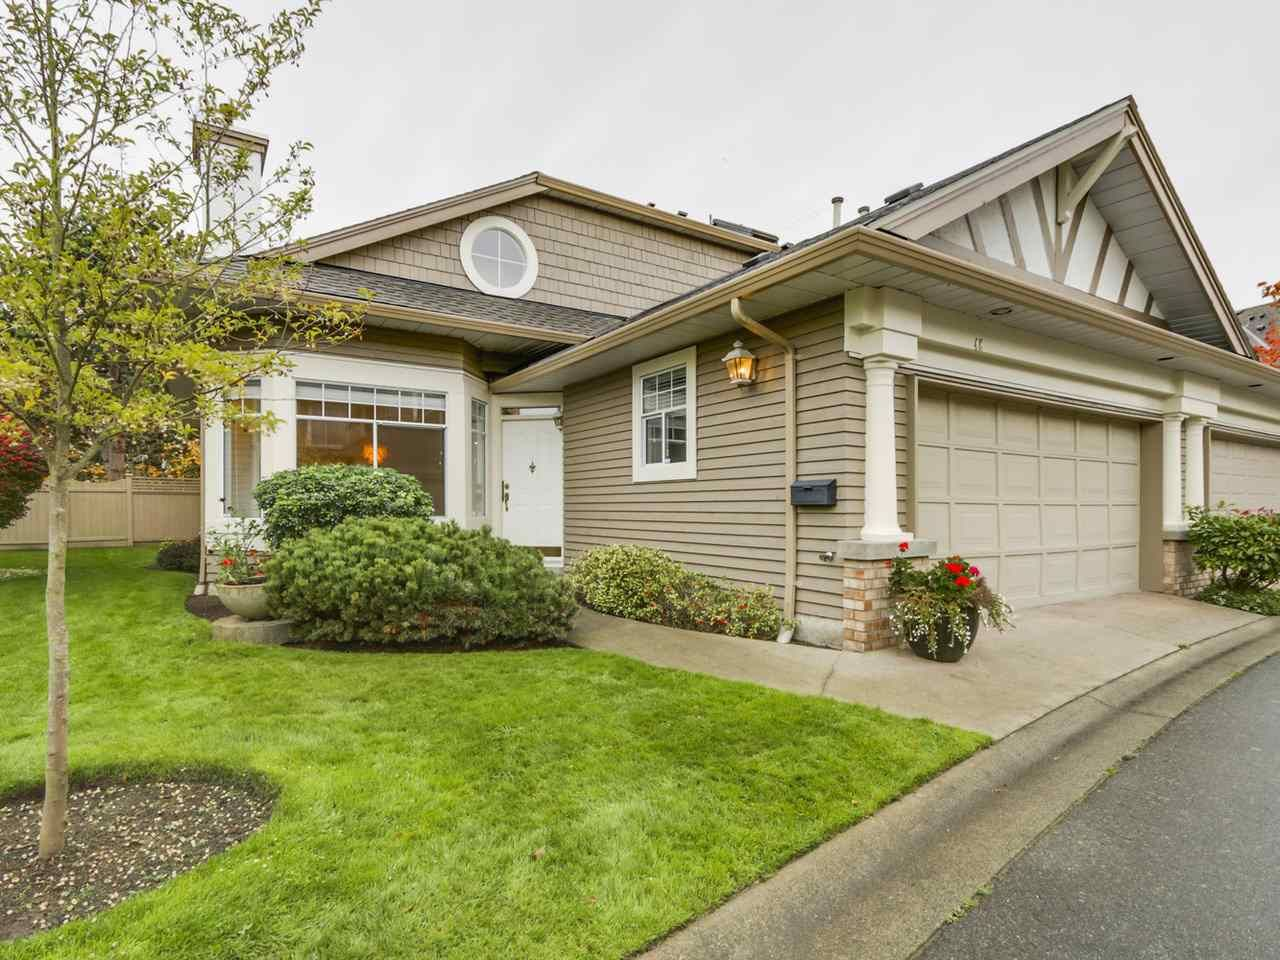 """Main Photo: 48 5531 CORNWALL Drive in Richmond: Terra Nova Townhouse for sale in """"QUILCHENA GREEN"""" : MLS®# R2118973"""